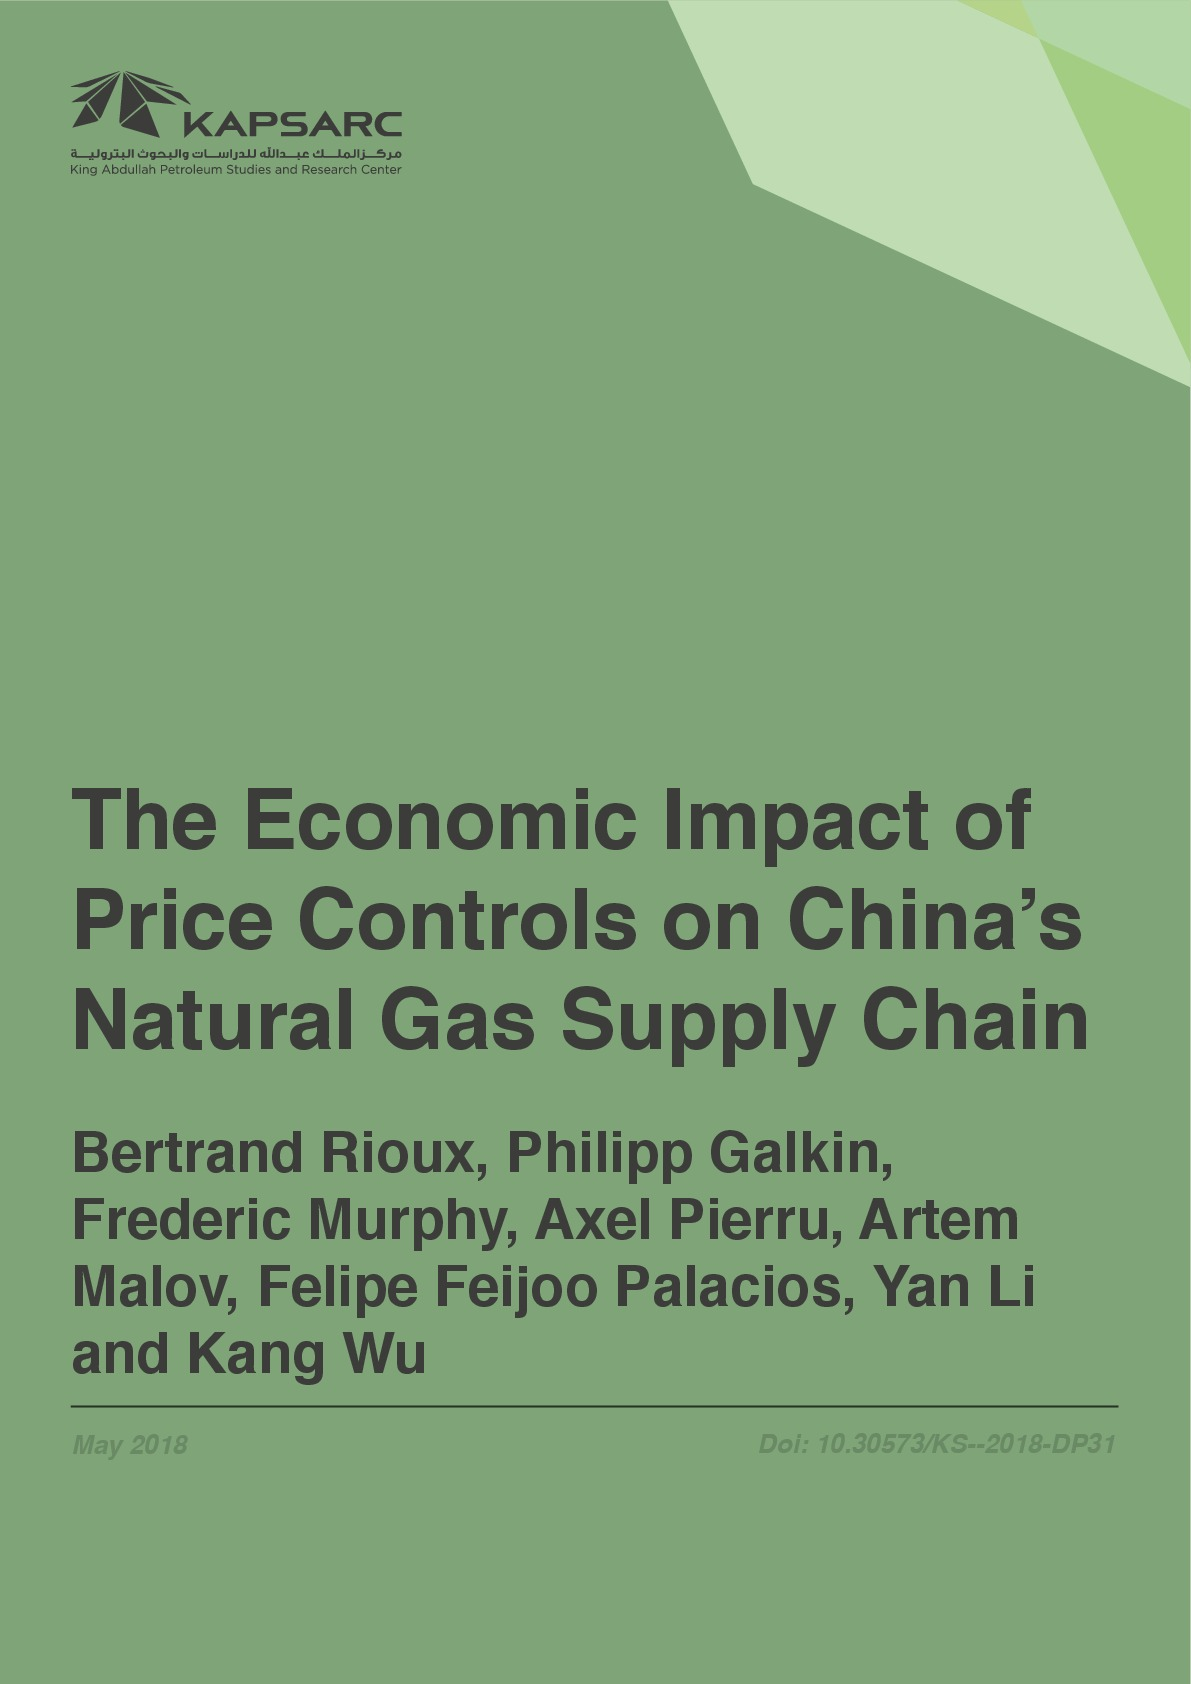 The Economic Impact of Price Controls on China's Natural Gas Supply Chain